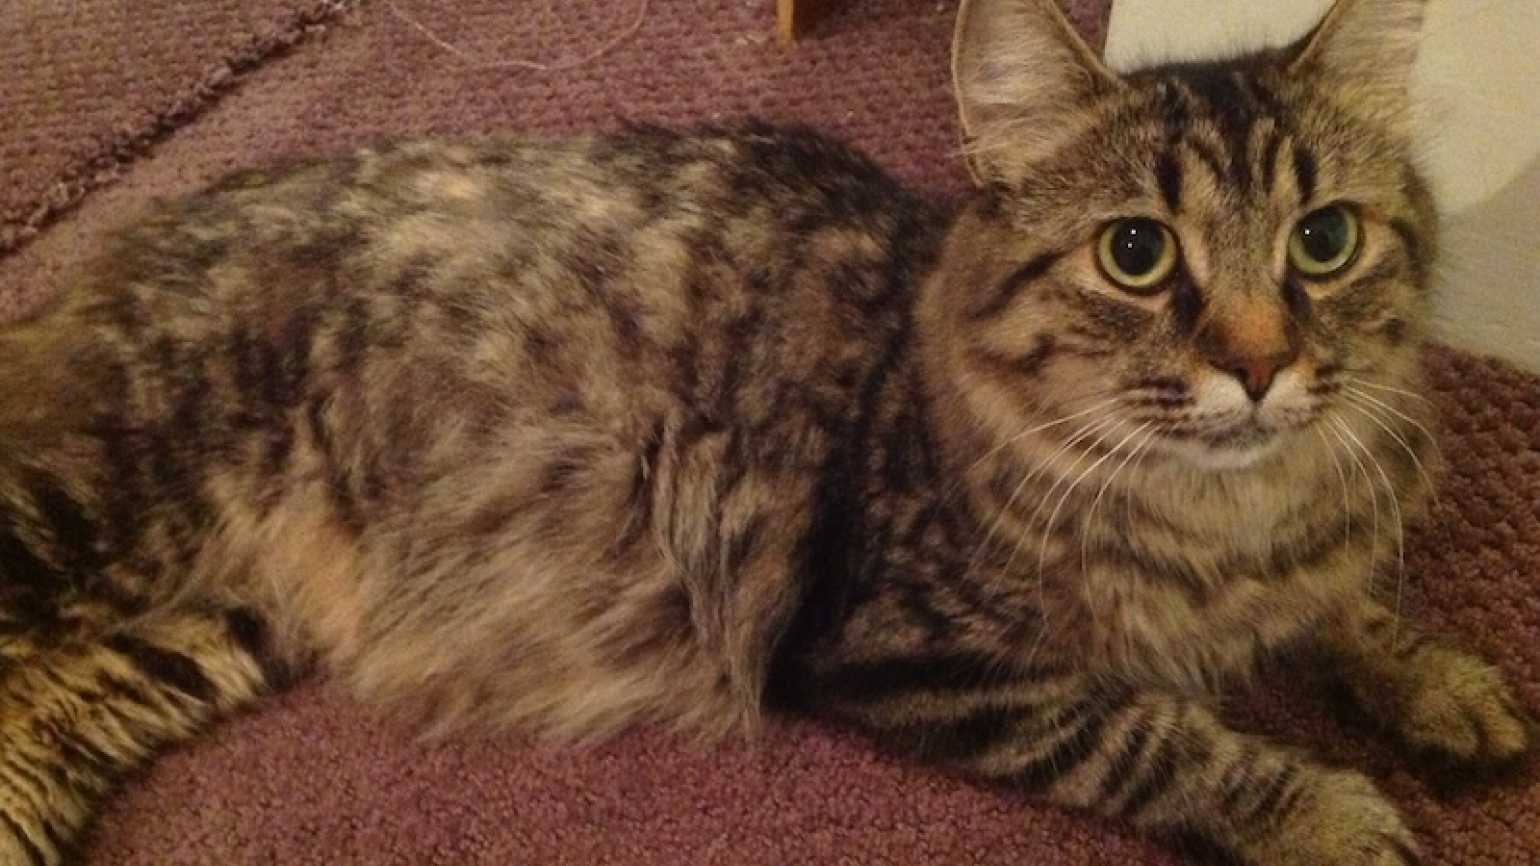 Tweedledum, a house cat who was born feral. Photo by Lori Cohen.